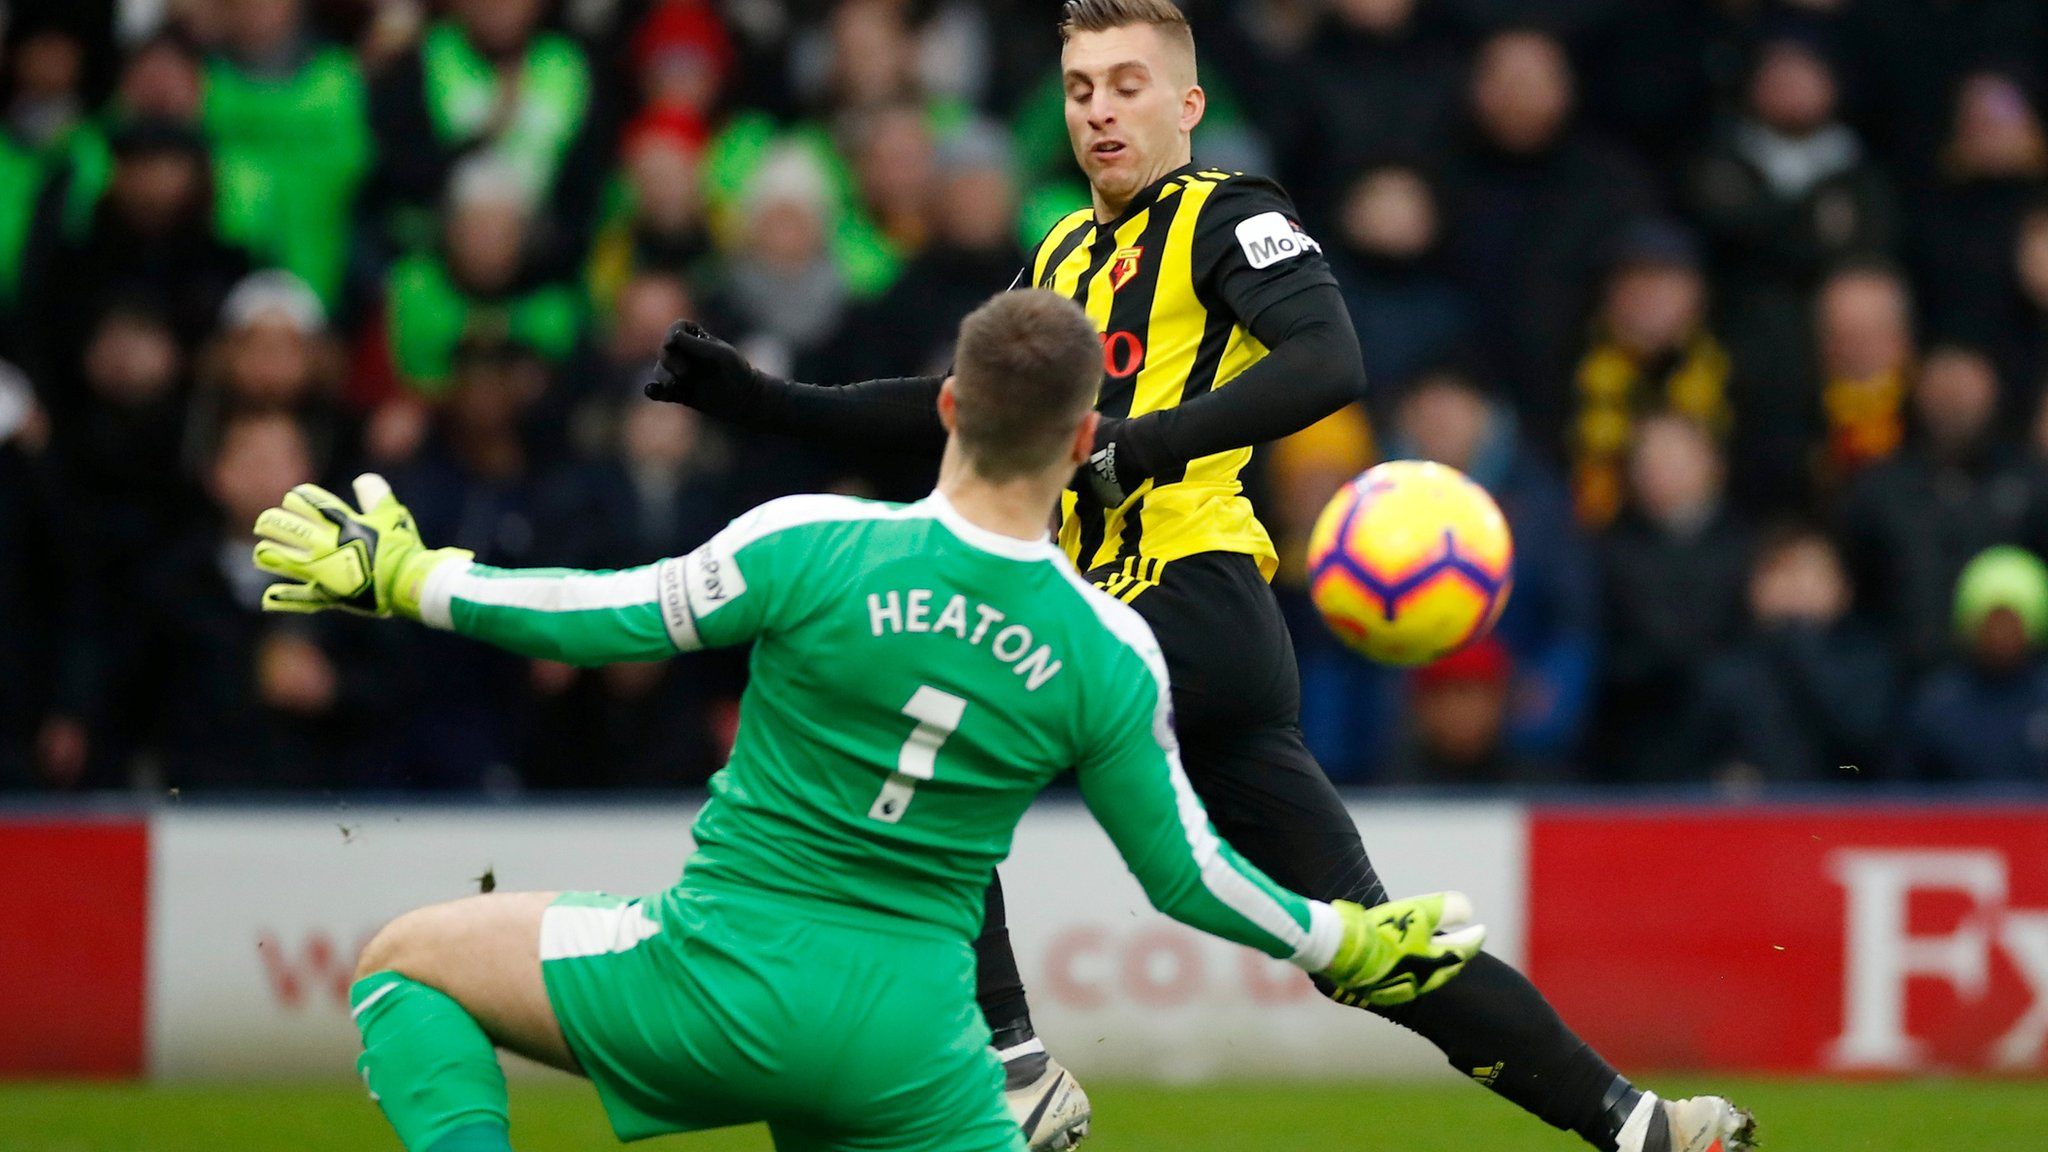 Watford 0-0 Burnley: Both sides maintain unbeaten start to 2019 after goalless draw